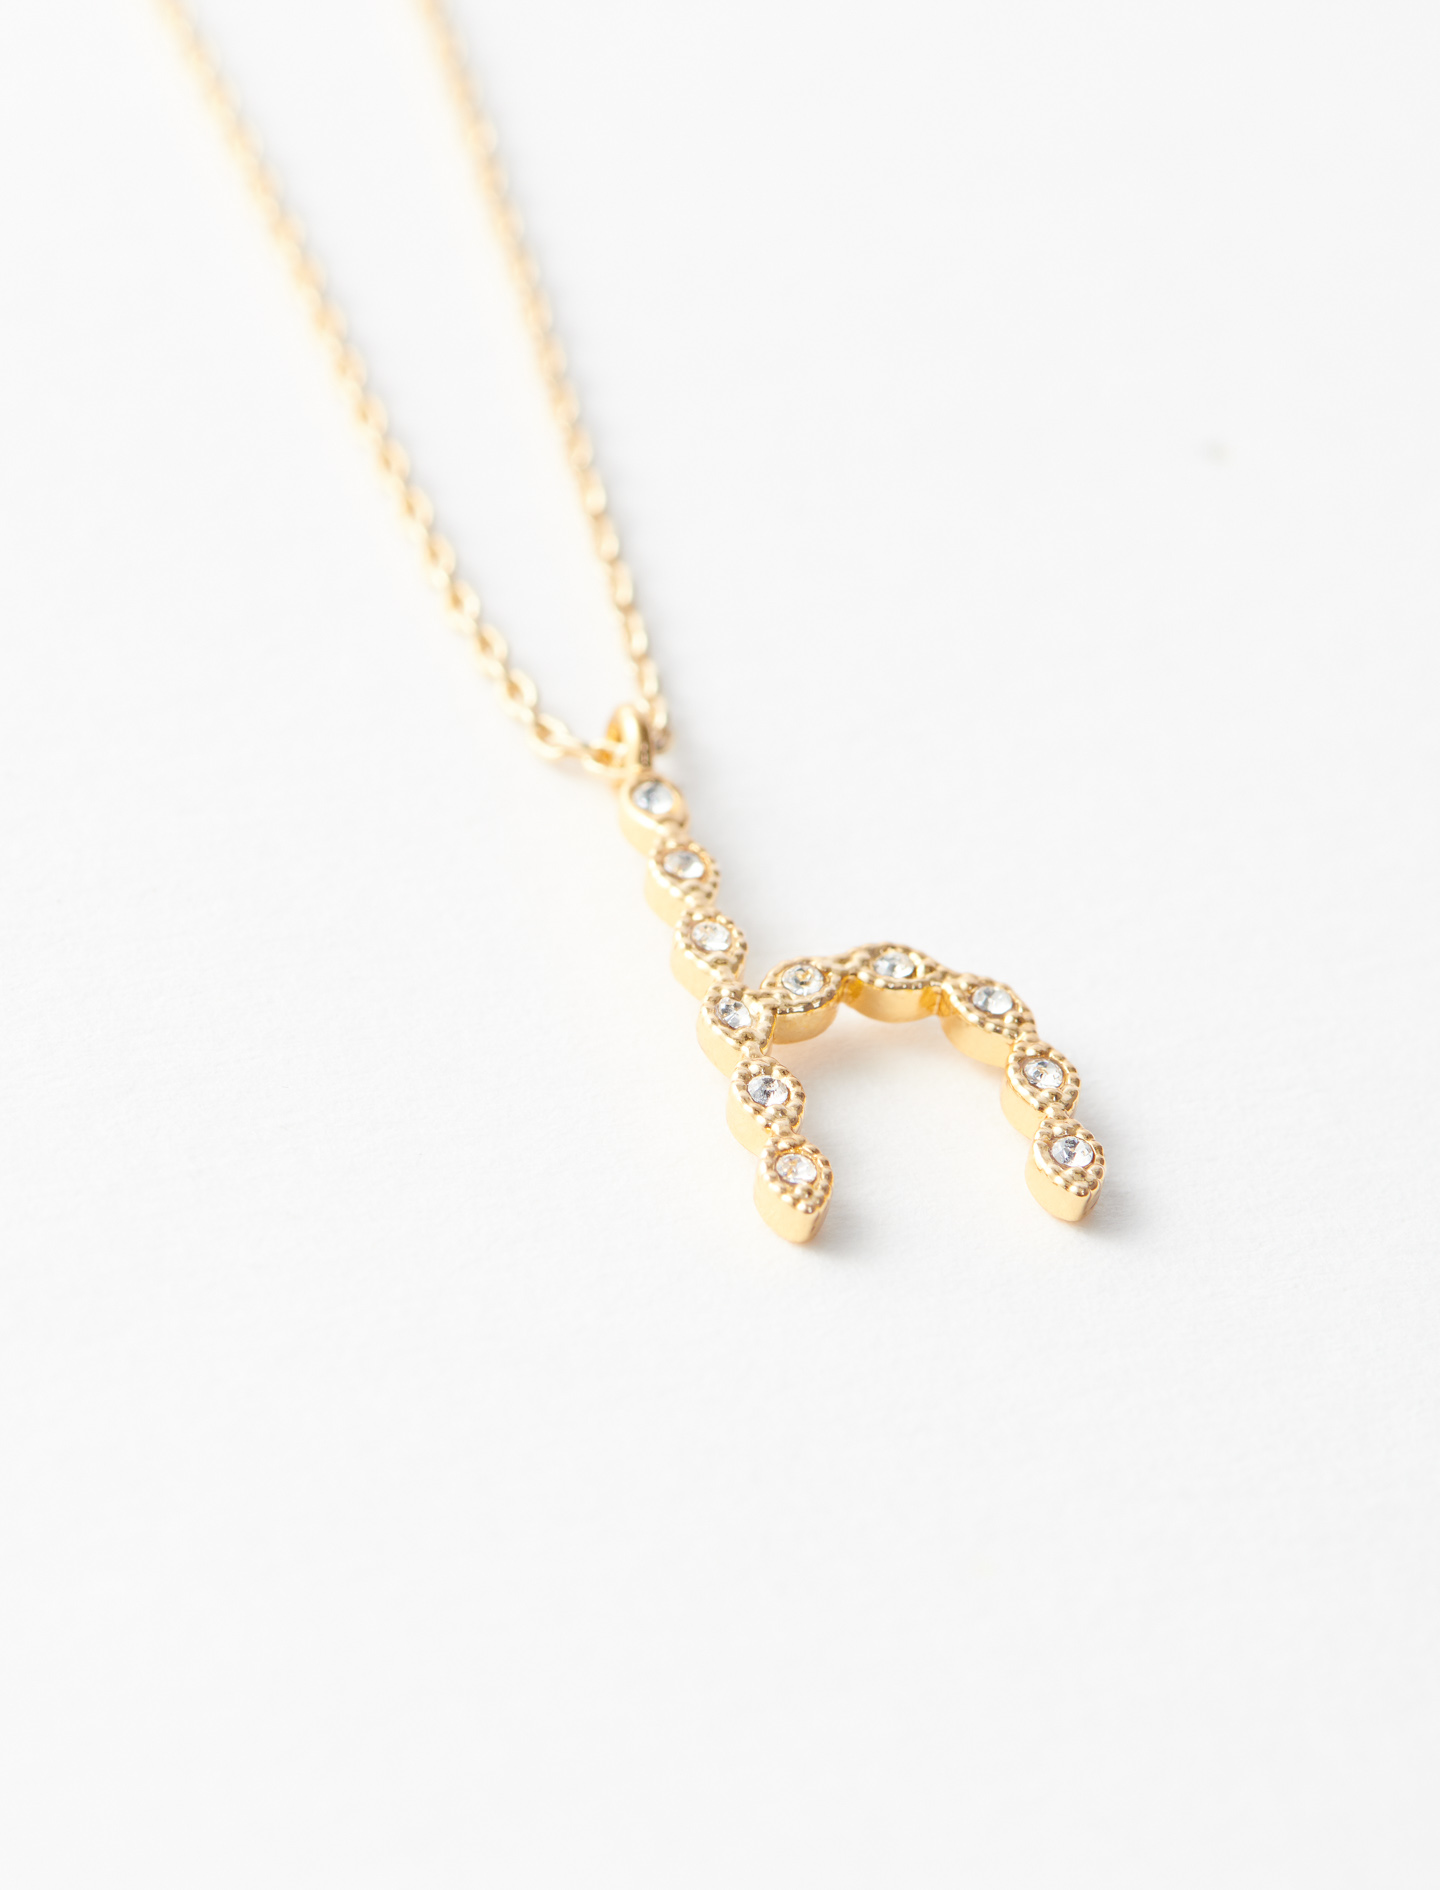 Rhinestone H necklace - Gold